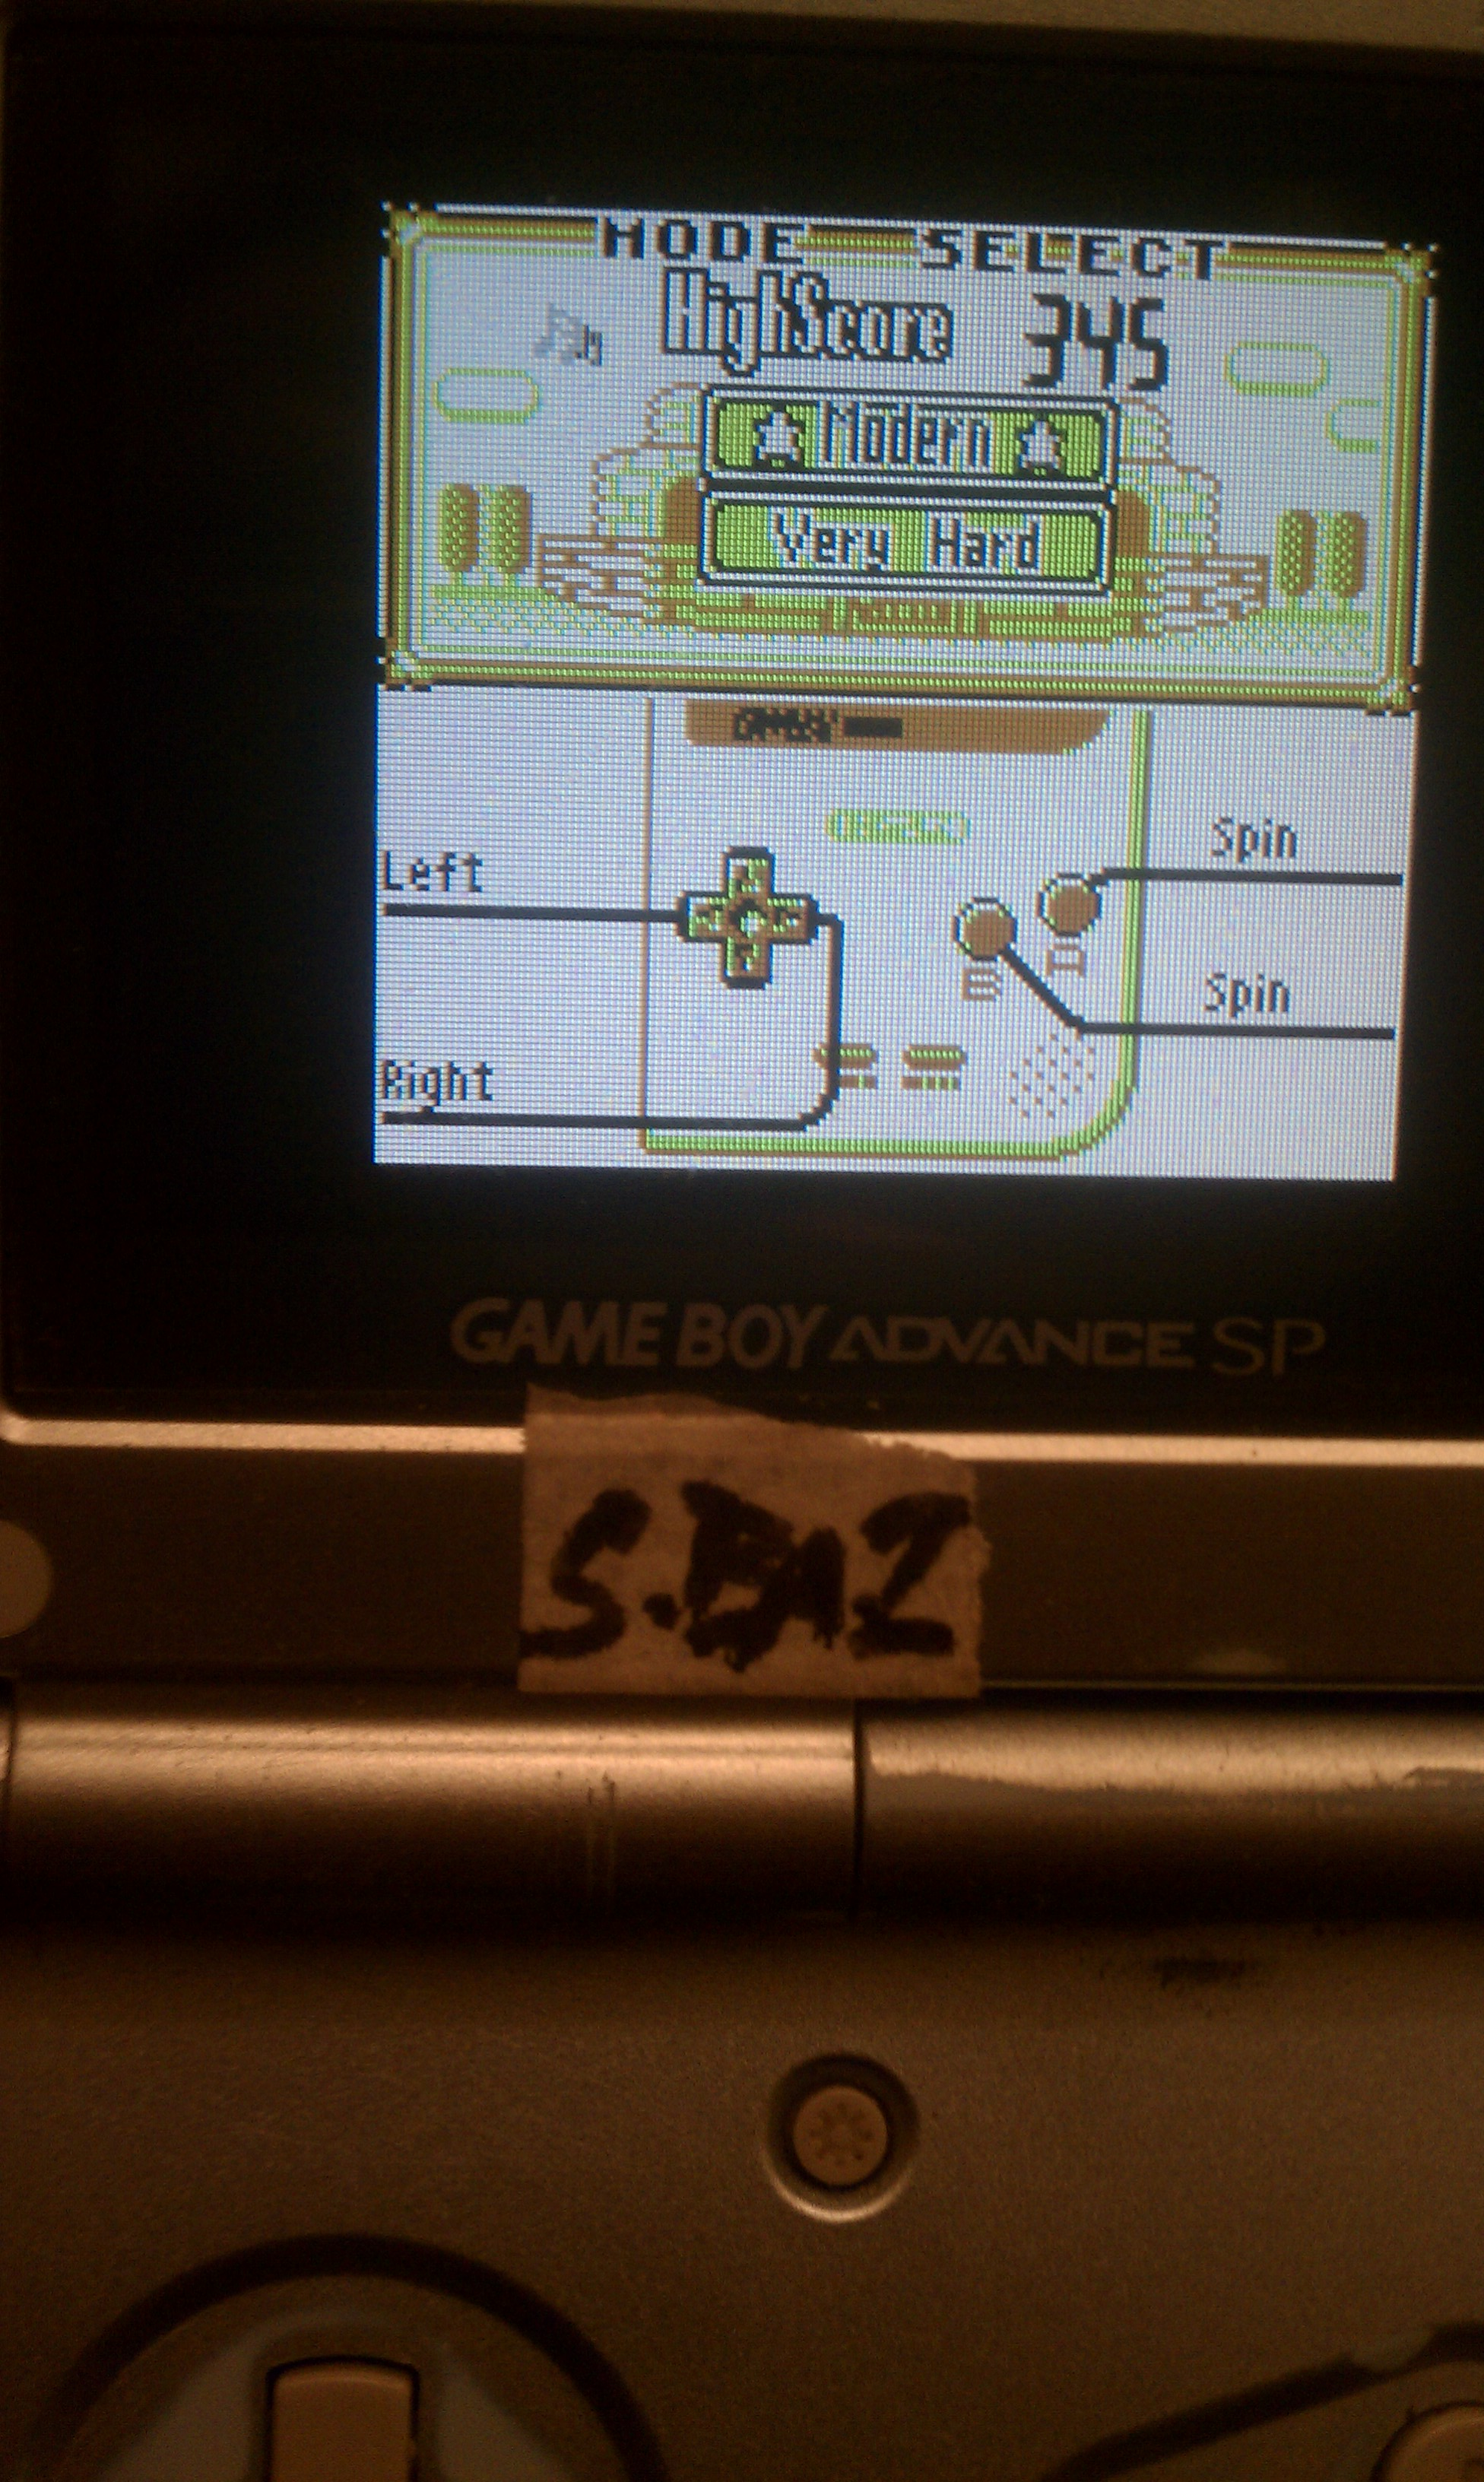 S.BAZ: Game & Watch Gallery: Oil Panic [Modern: Very Hard] (Game Boy) 345 points on 2020-07-12 00:16:37